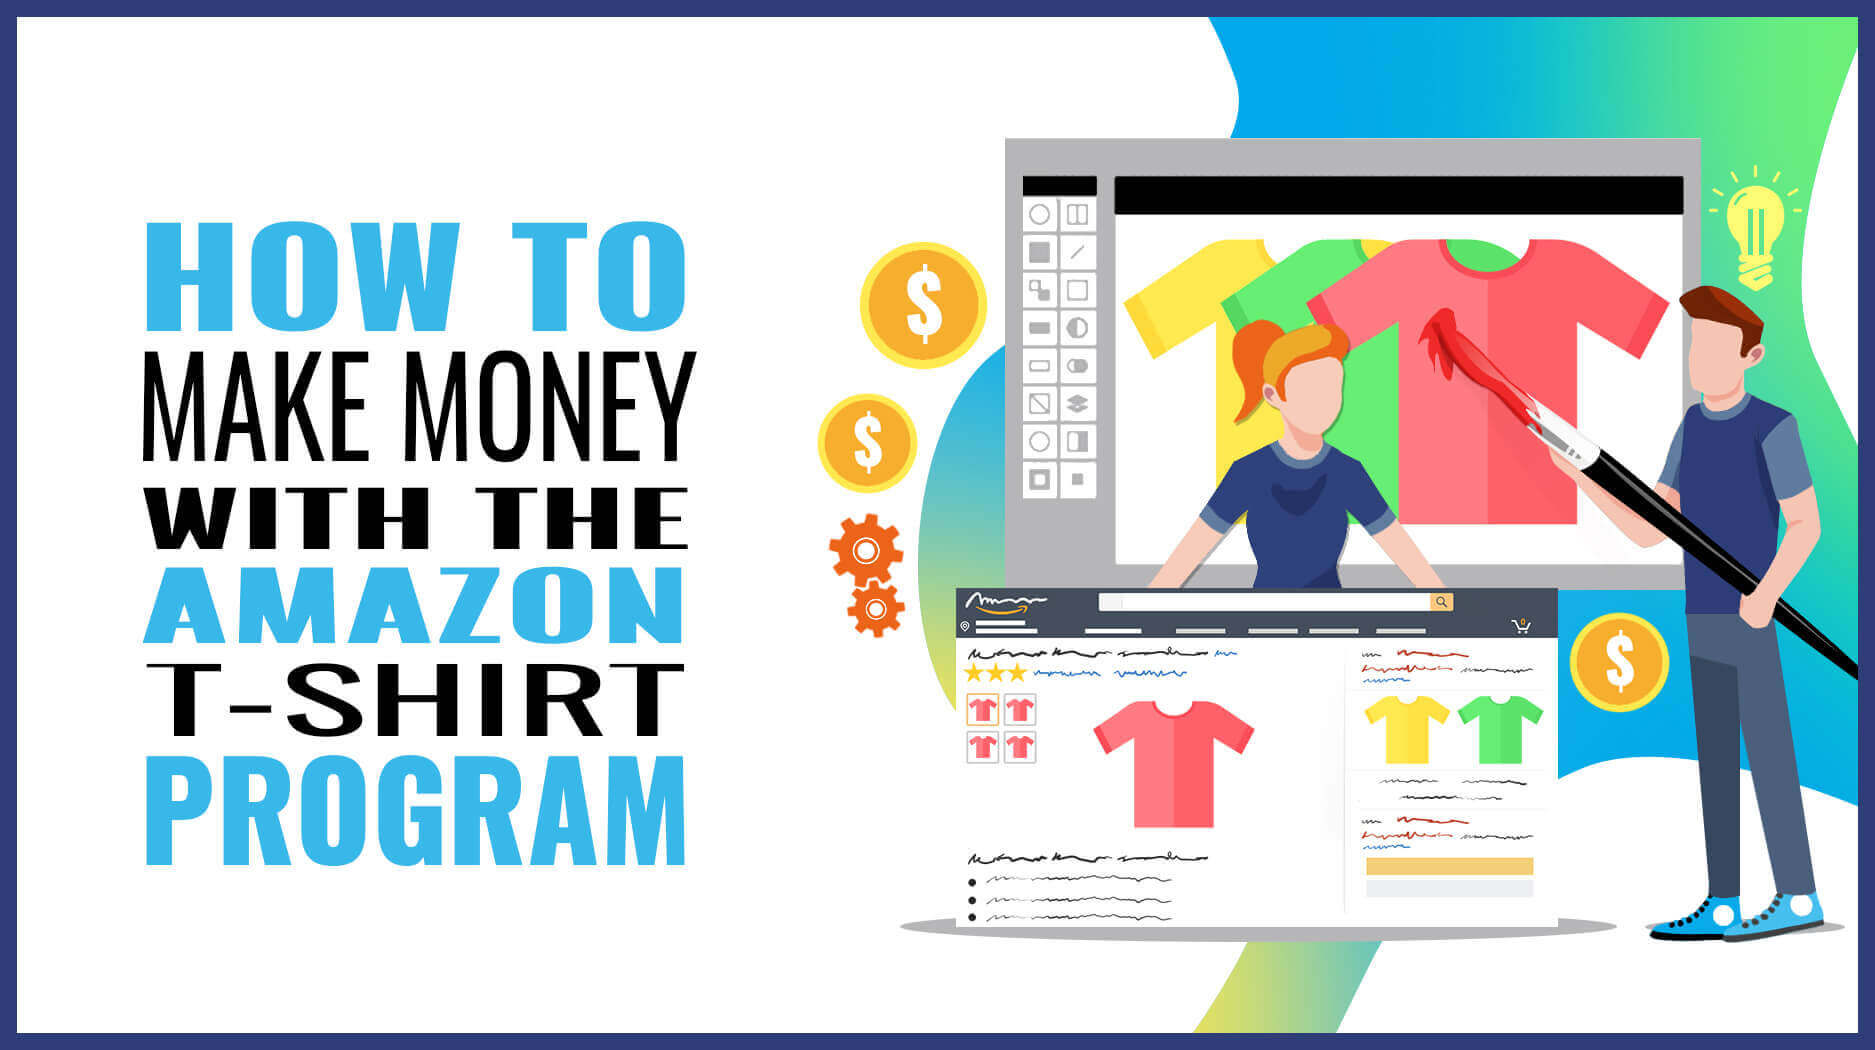 Merch By Amazon How To Make Money With The Amazon T Shirt Program